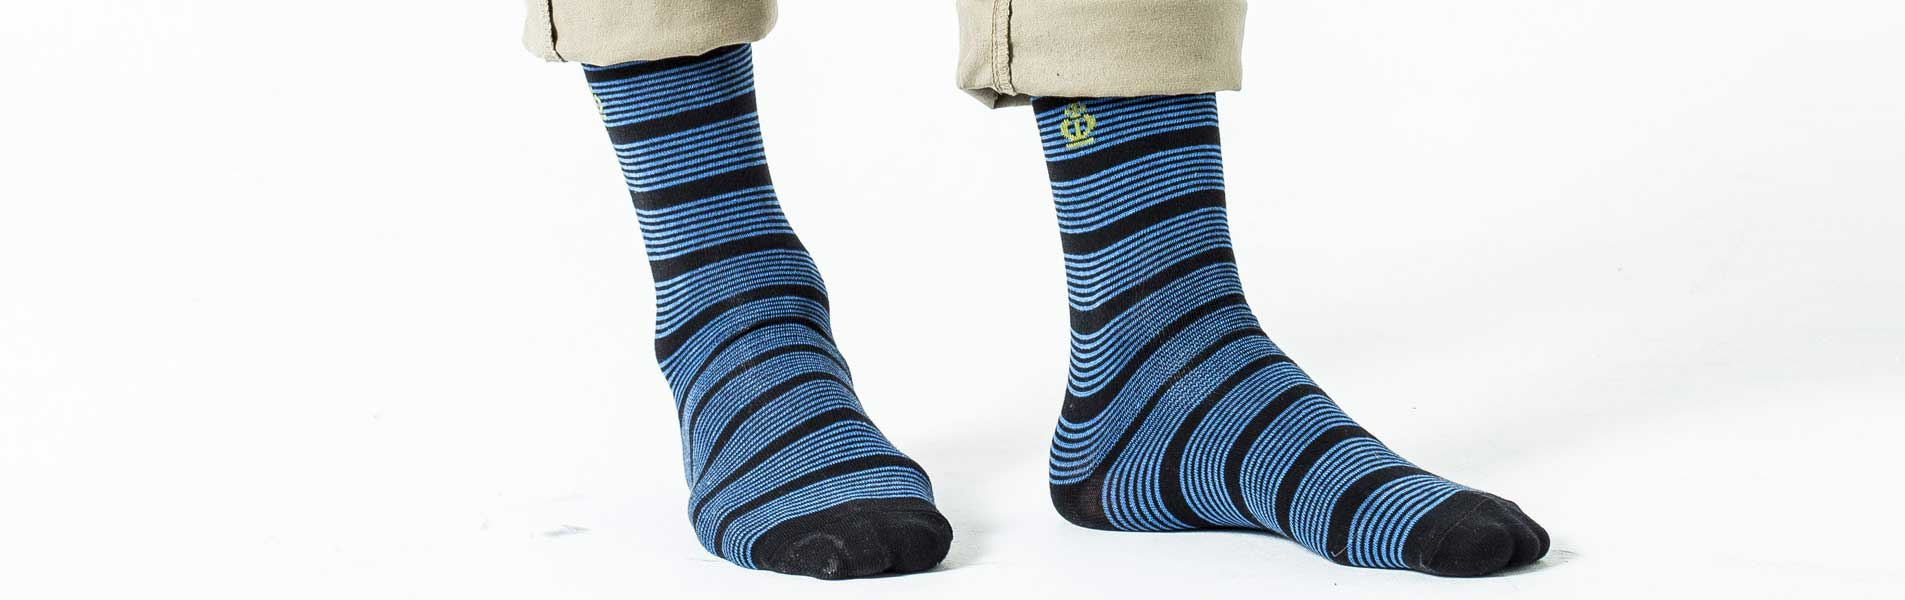 Jeff Banks Men's Striped Socks